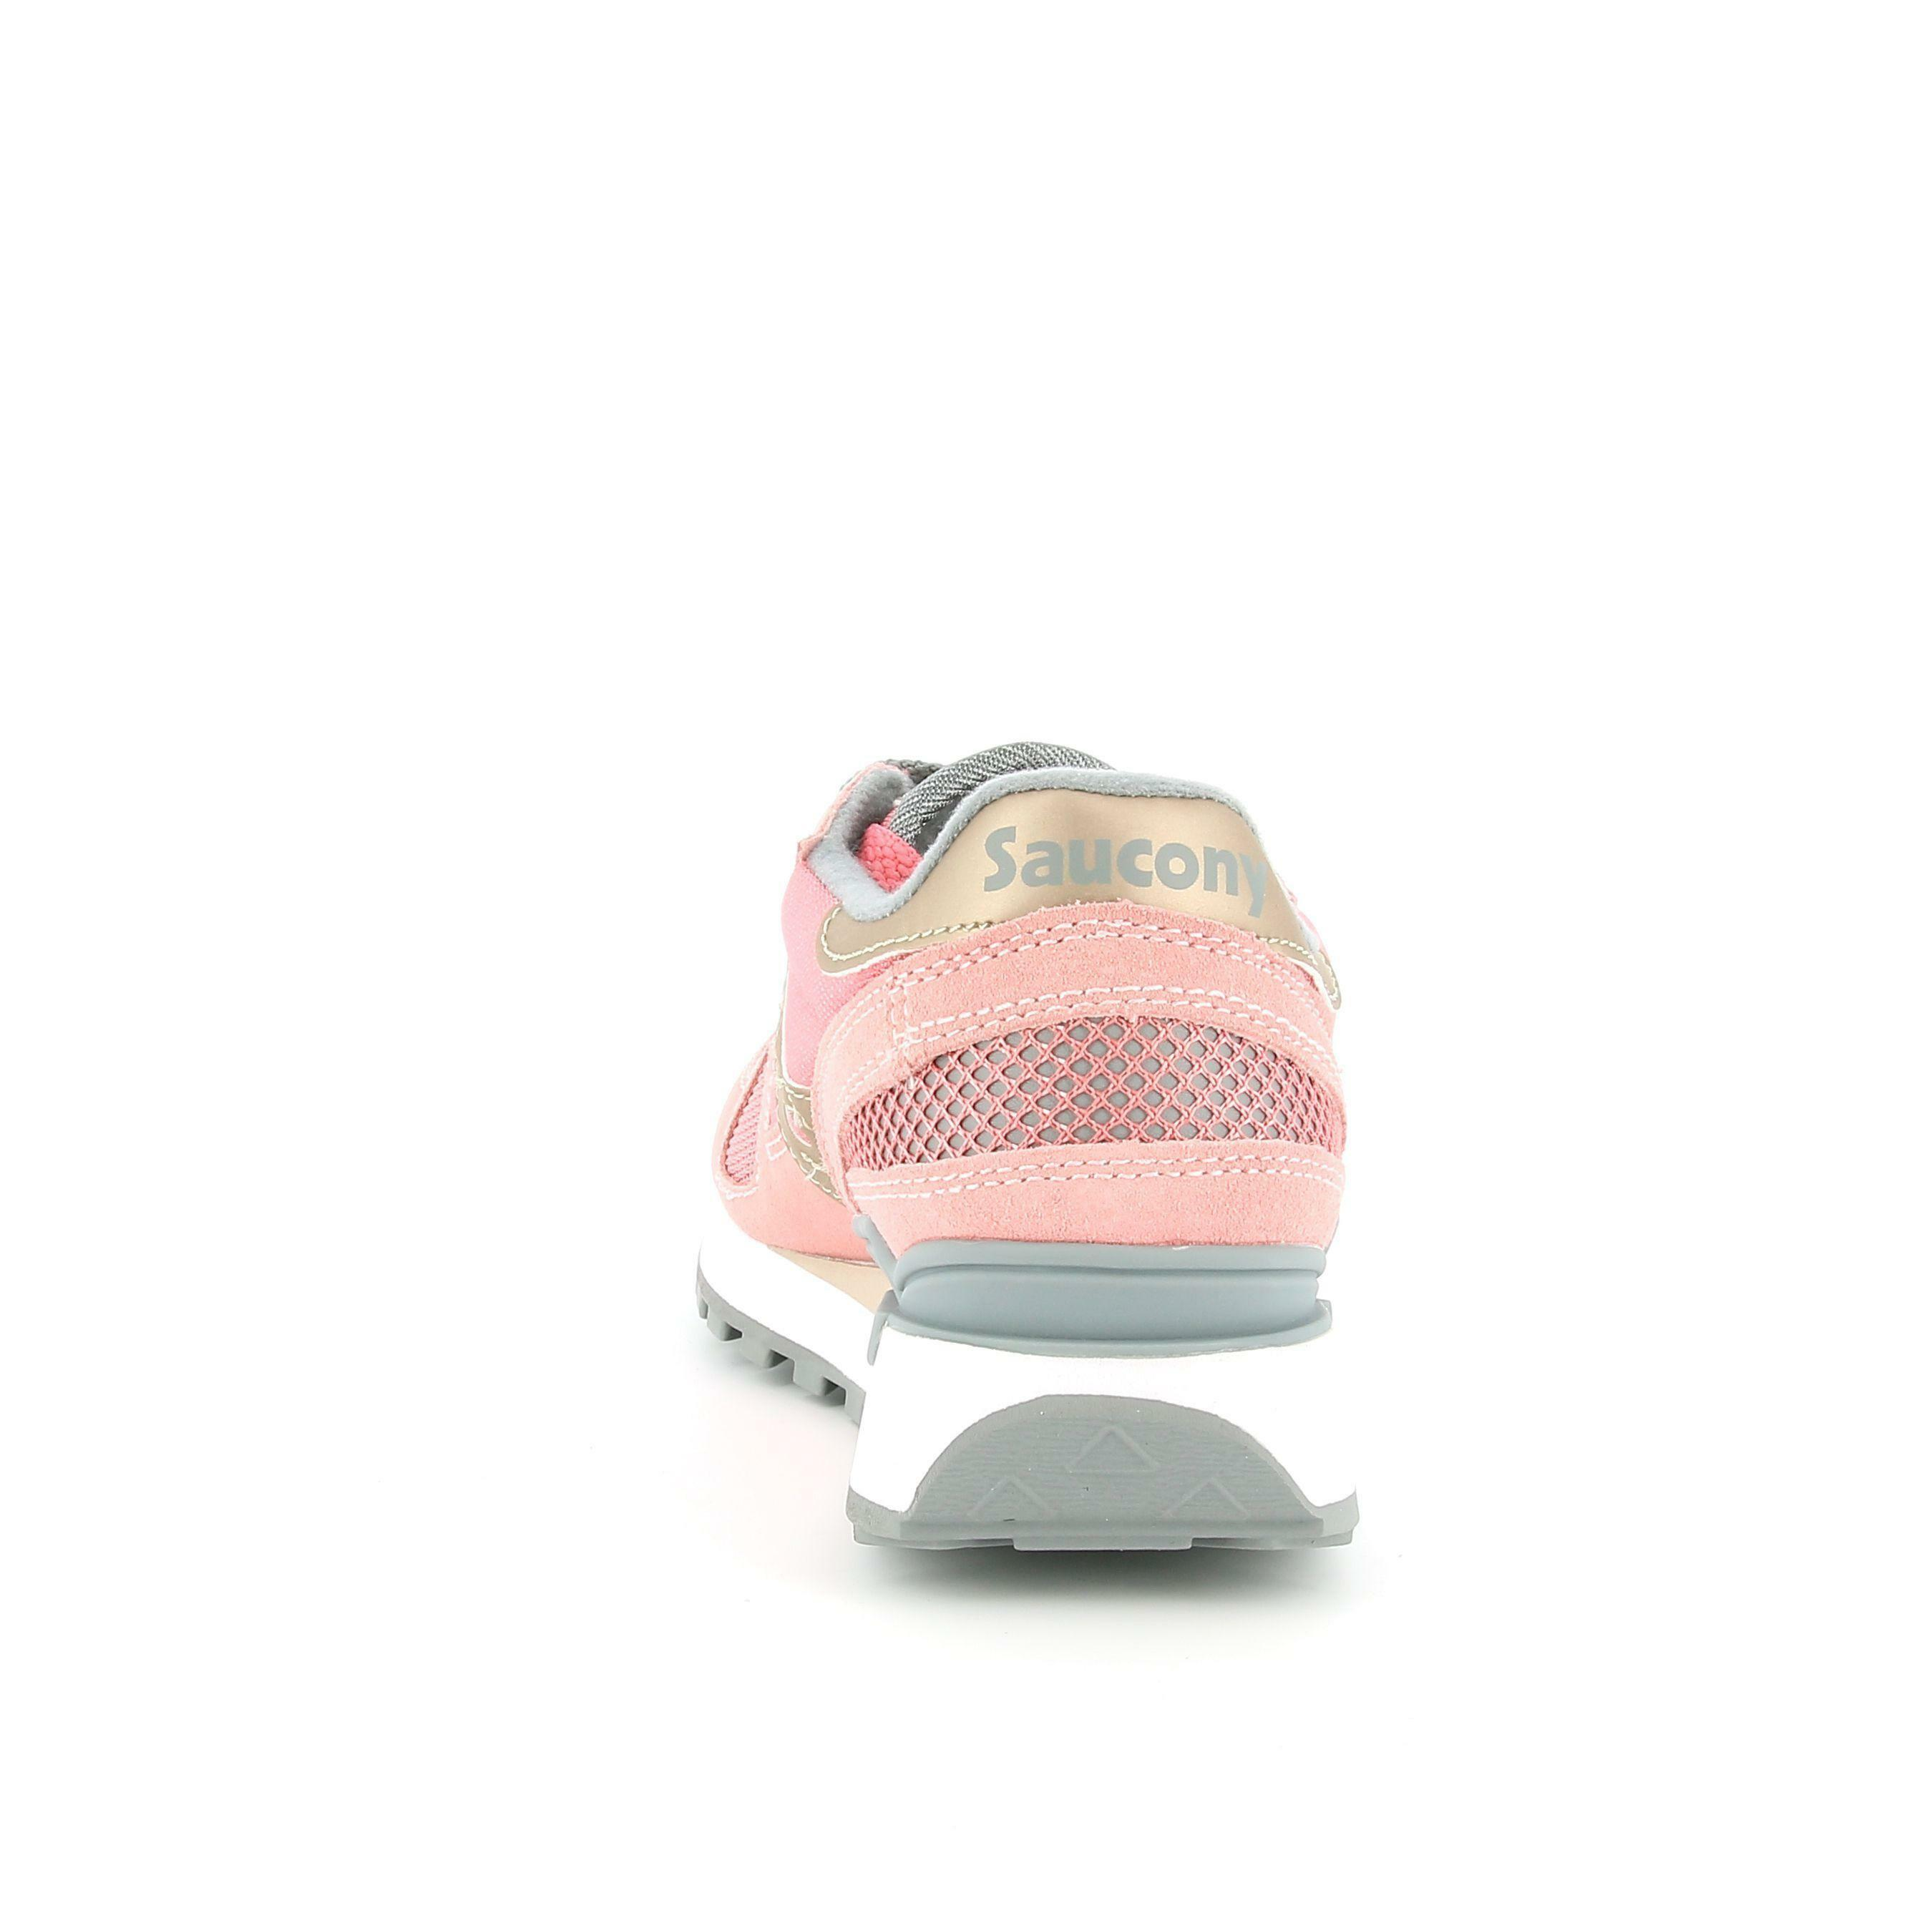 saucony saucony sneakers s1108-722 rosa sneakers donna